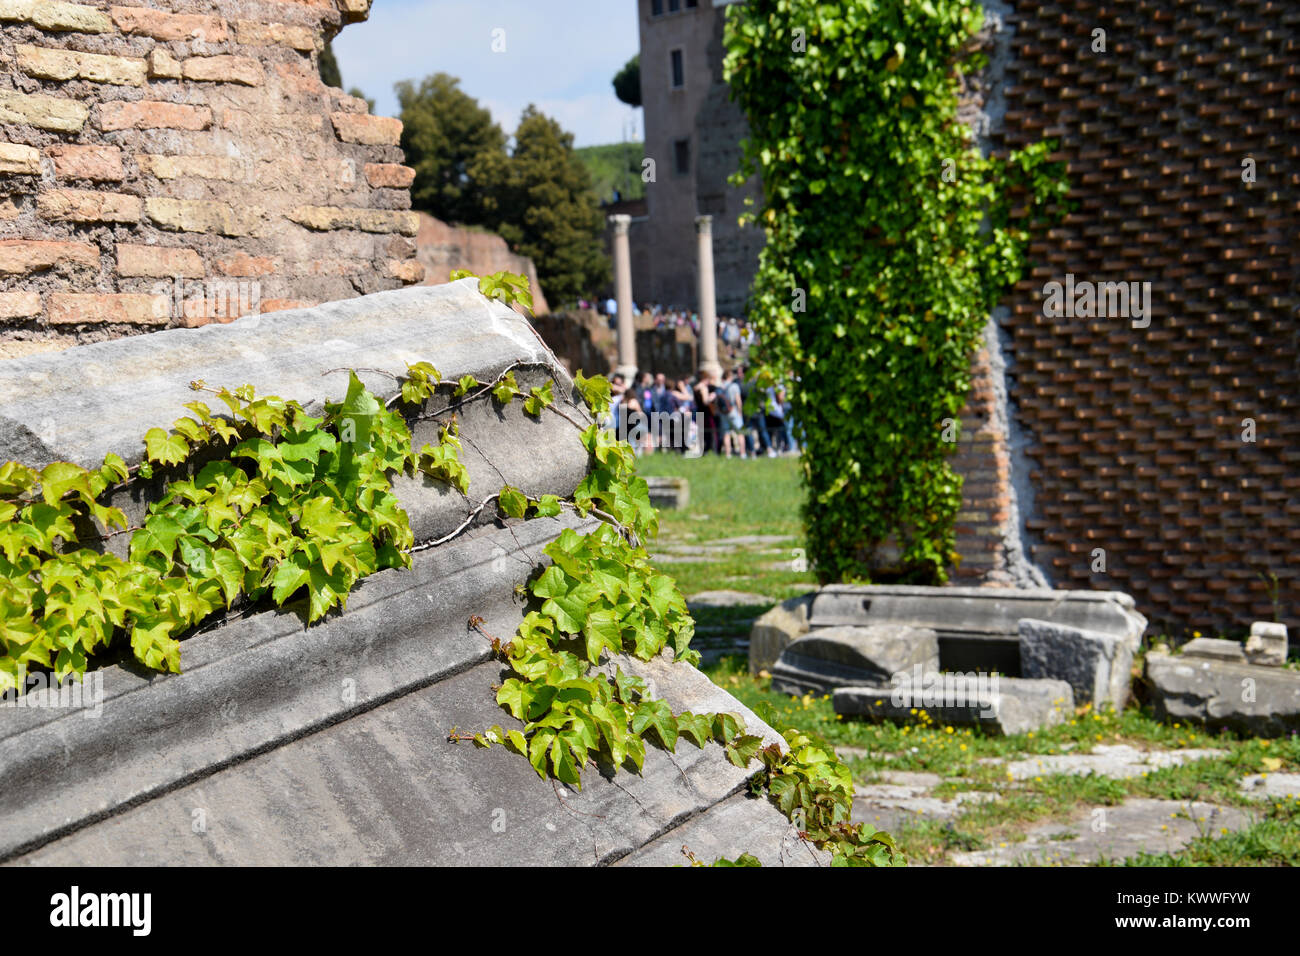 Sunny day in the Forum Romanum, Rome, Italy - Stock Image